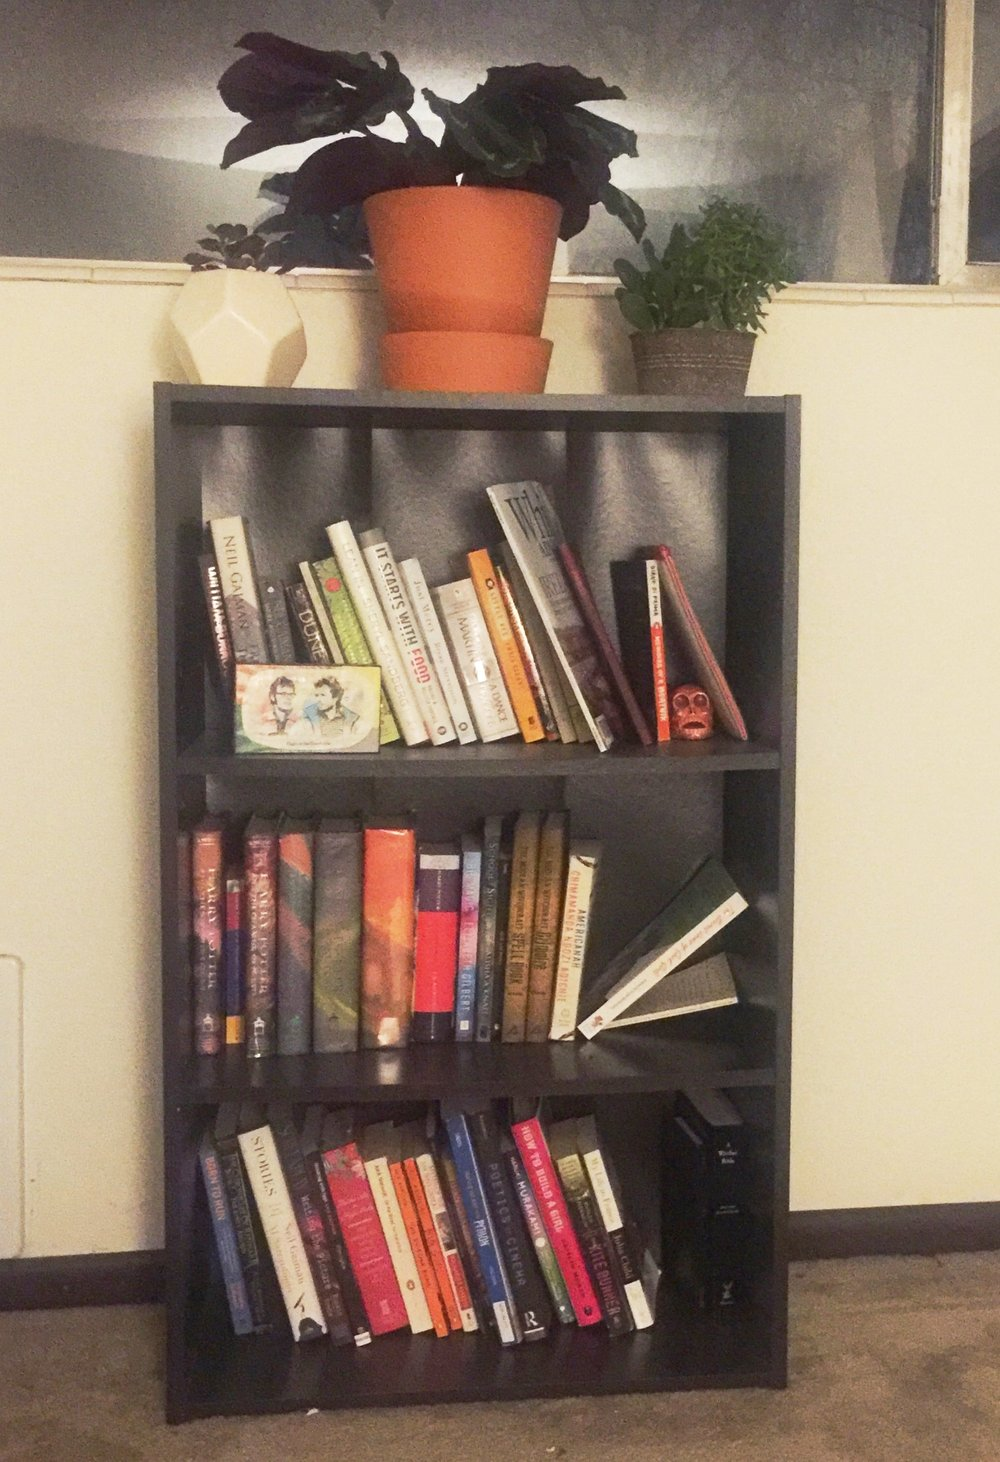 My Current bookshelf. My plants from L-R. Peter, Freya, Orion & Aurelia.